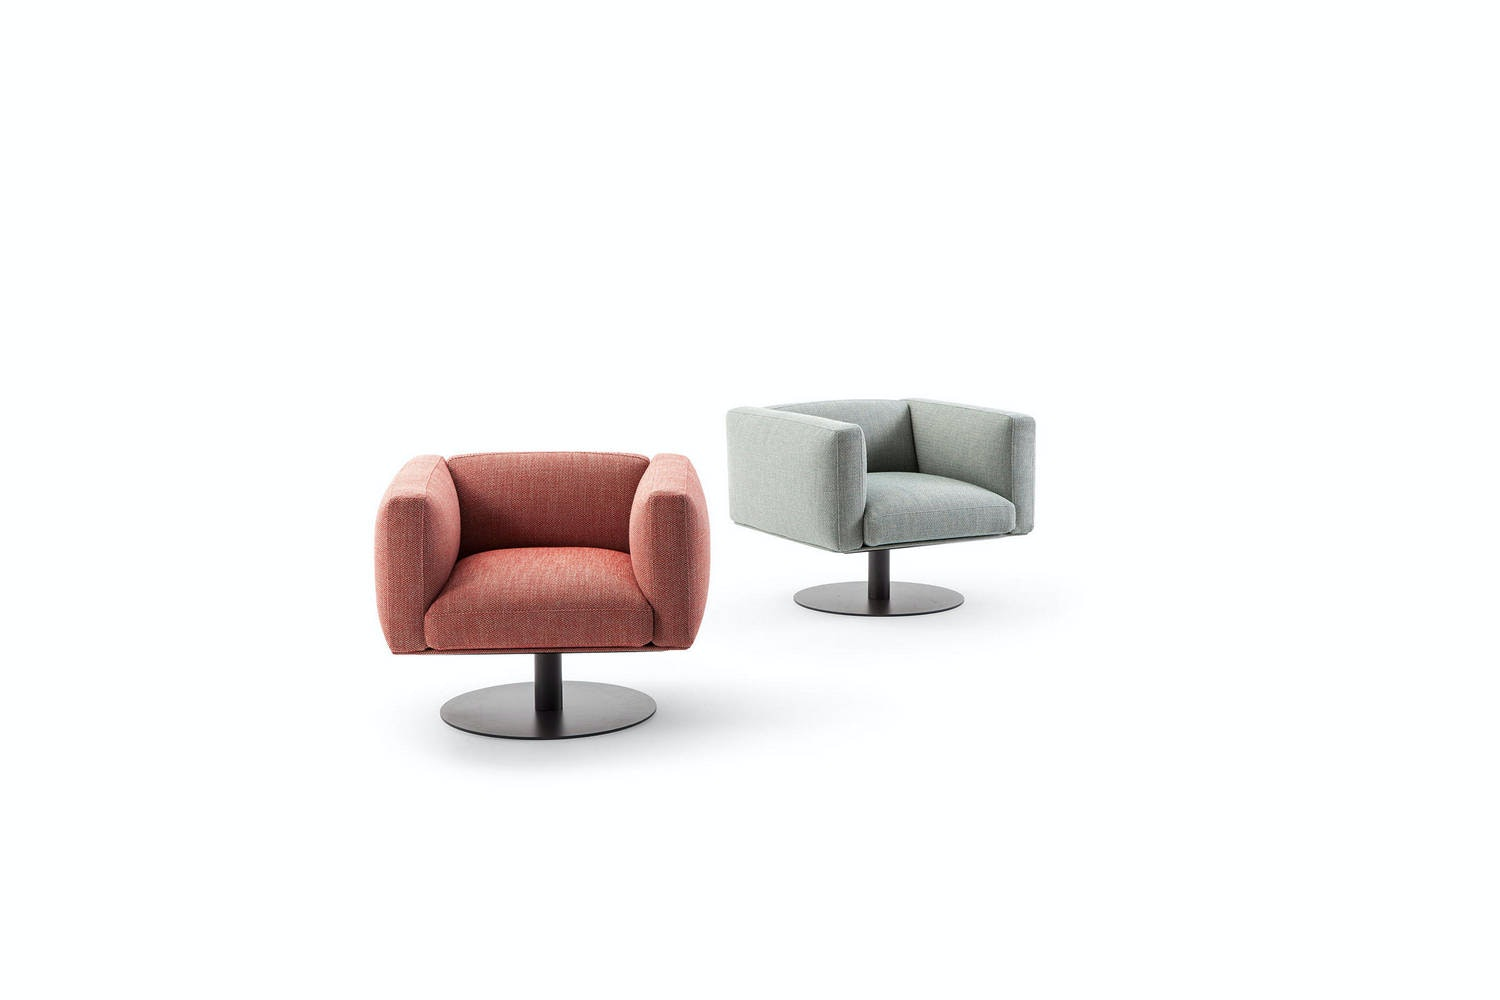 206 8 Cube Armchair by Piero Lissoni for Cassina